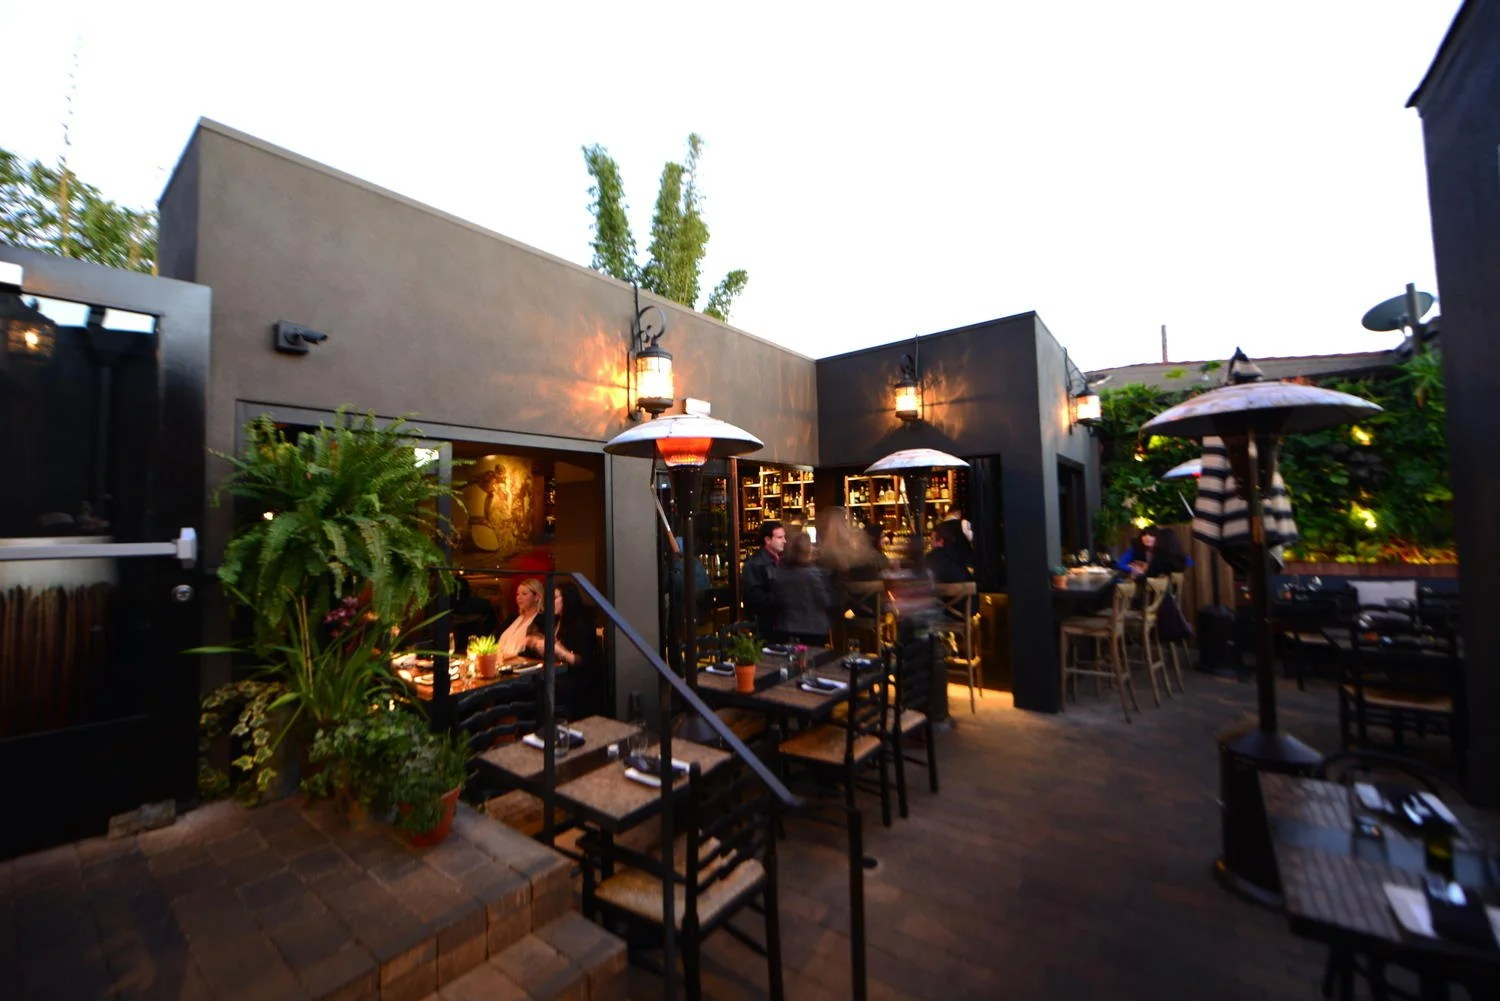 the patio on lamont oo d a